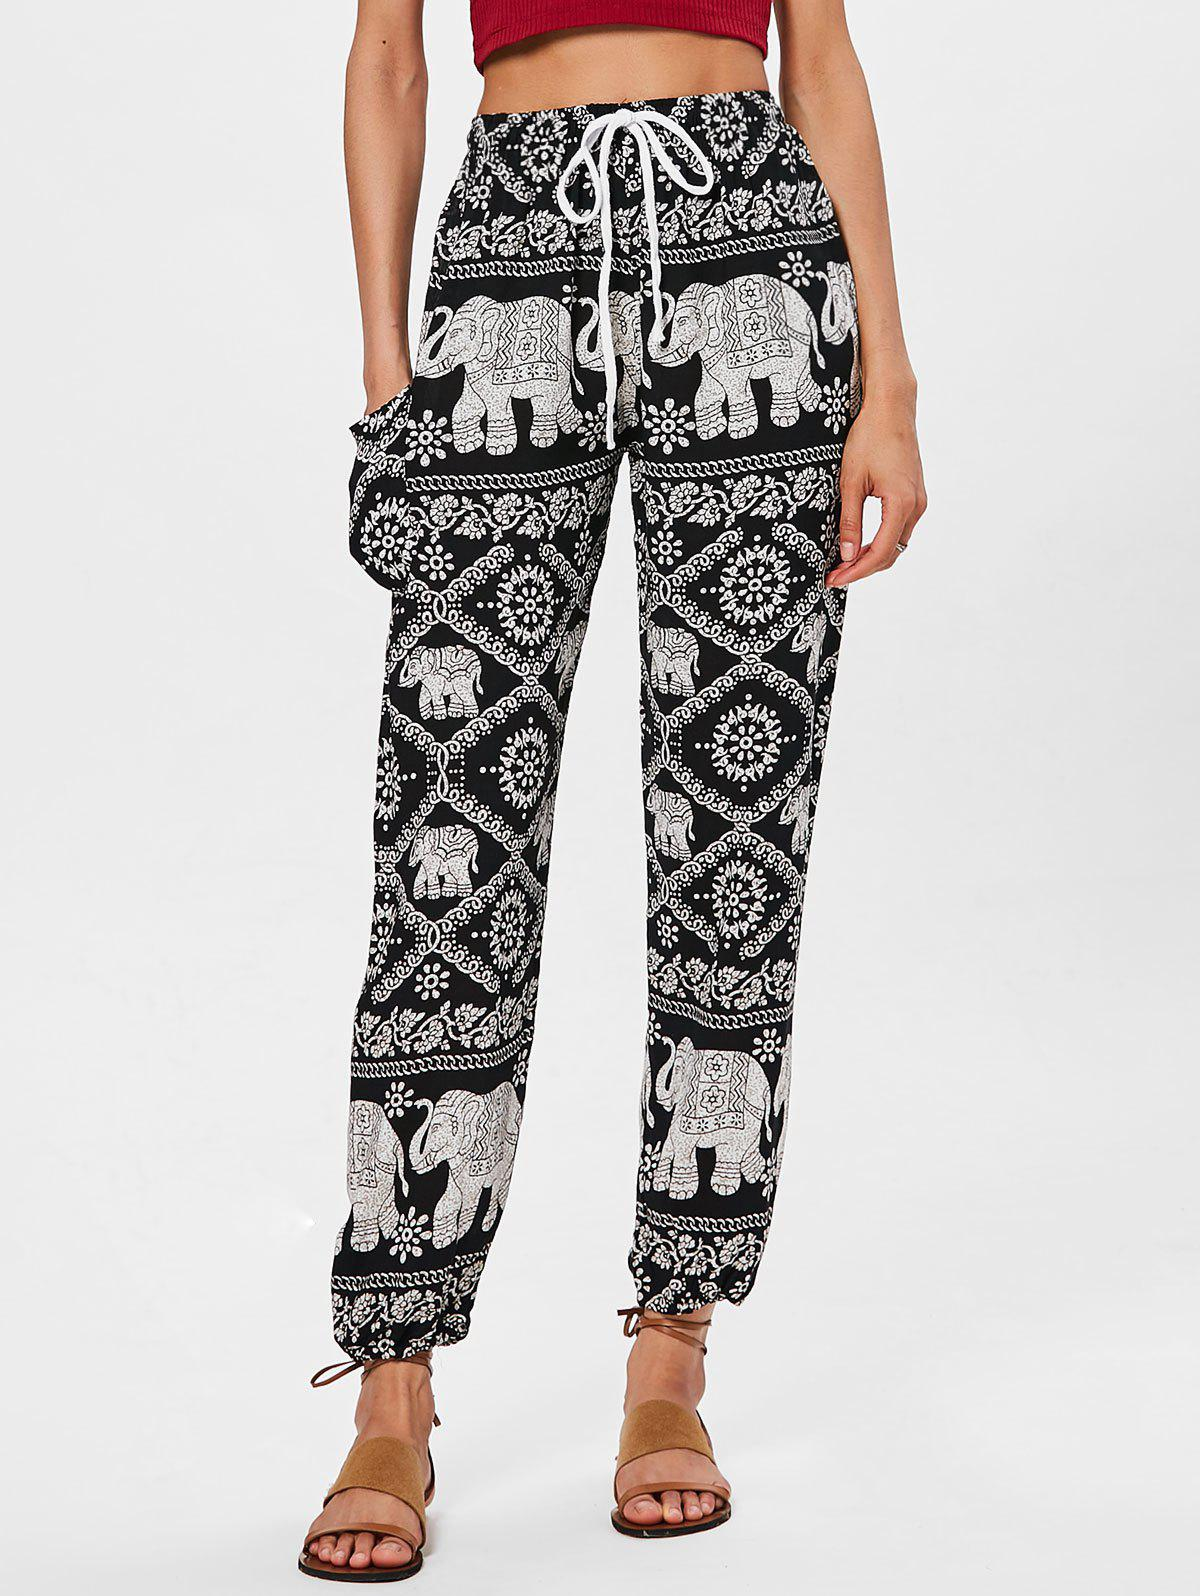 Bohemian High Waist Triabl Print Pants - BLACK 2XL